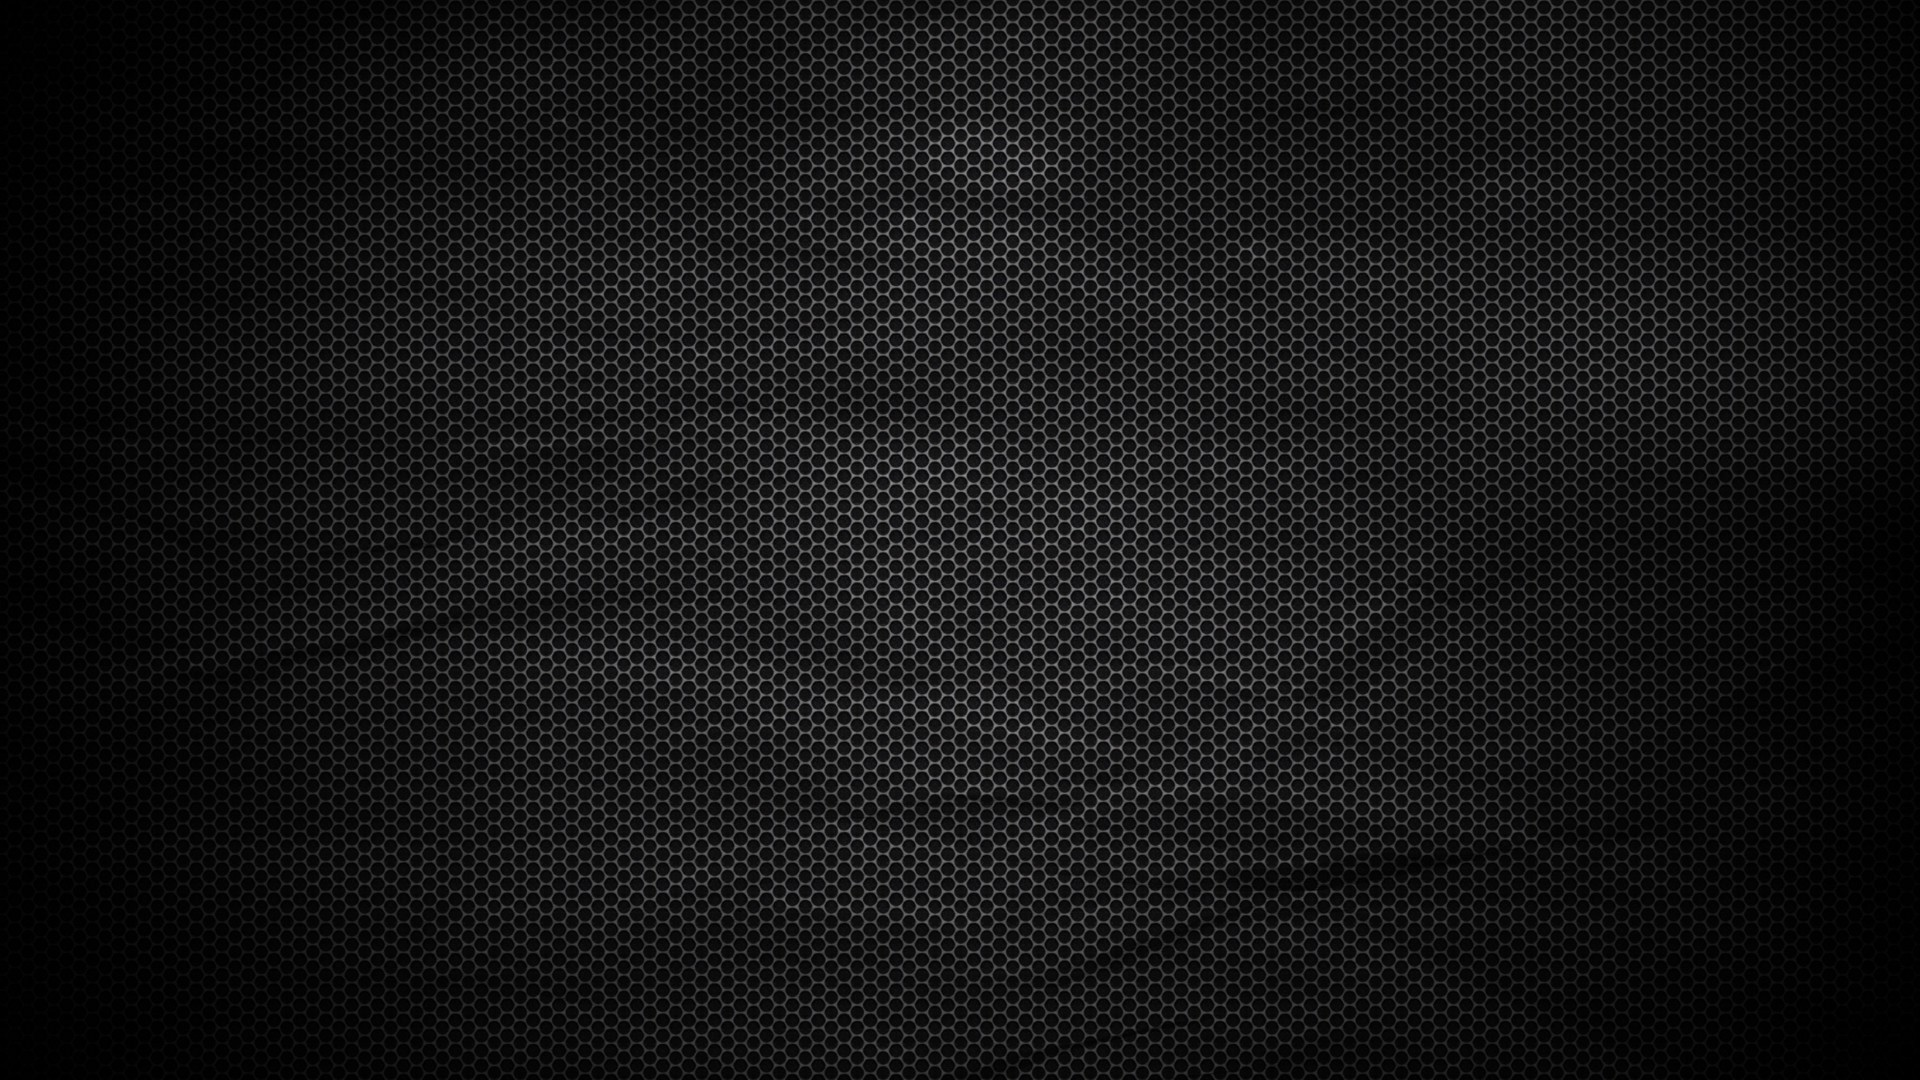 1920x1080 black-metallic-honeycomb-pattern-night-effect-dark-backgrounds-hd-wallpapers -hd-wallpaper-fantasy-images-honeycamb-wallpaper